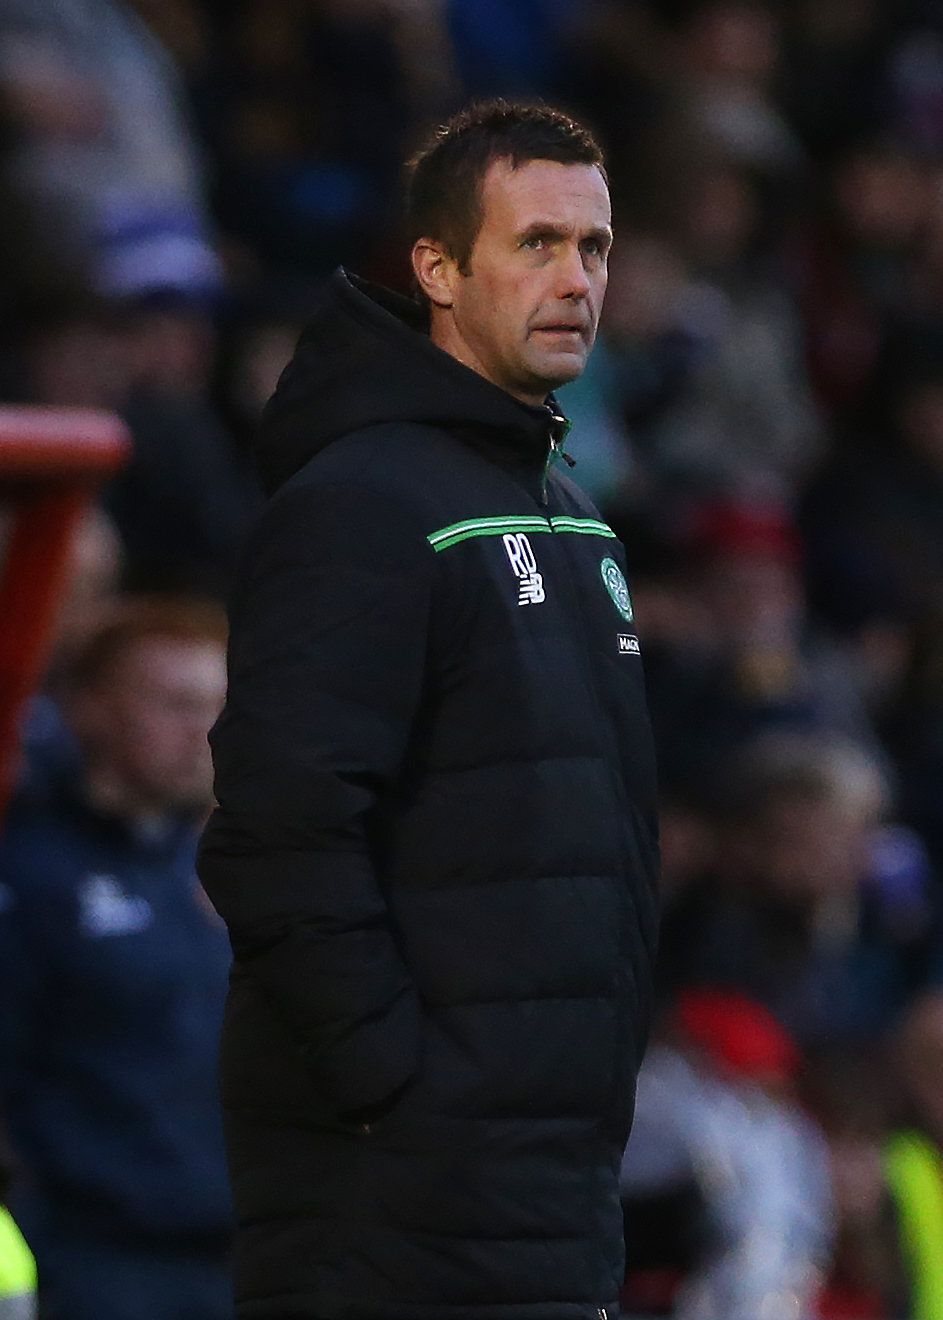 Ronny Deila struggled in the latter months of his tenure at Celtic